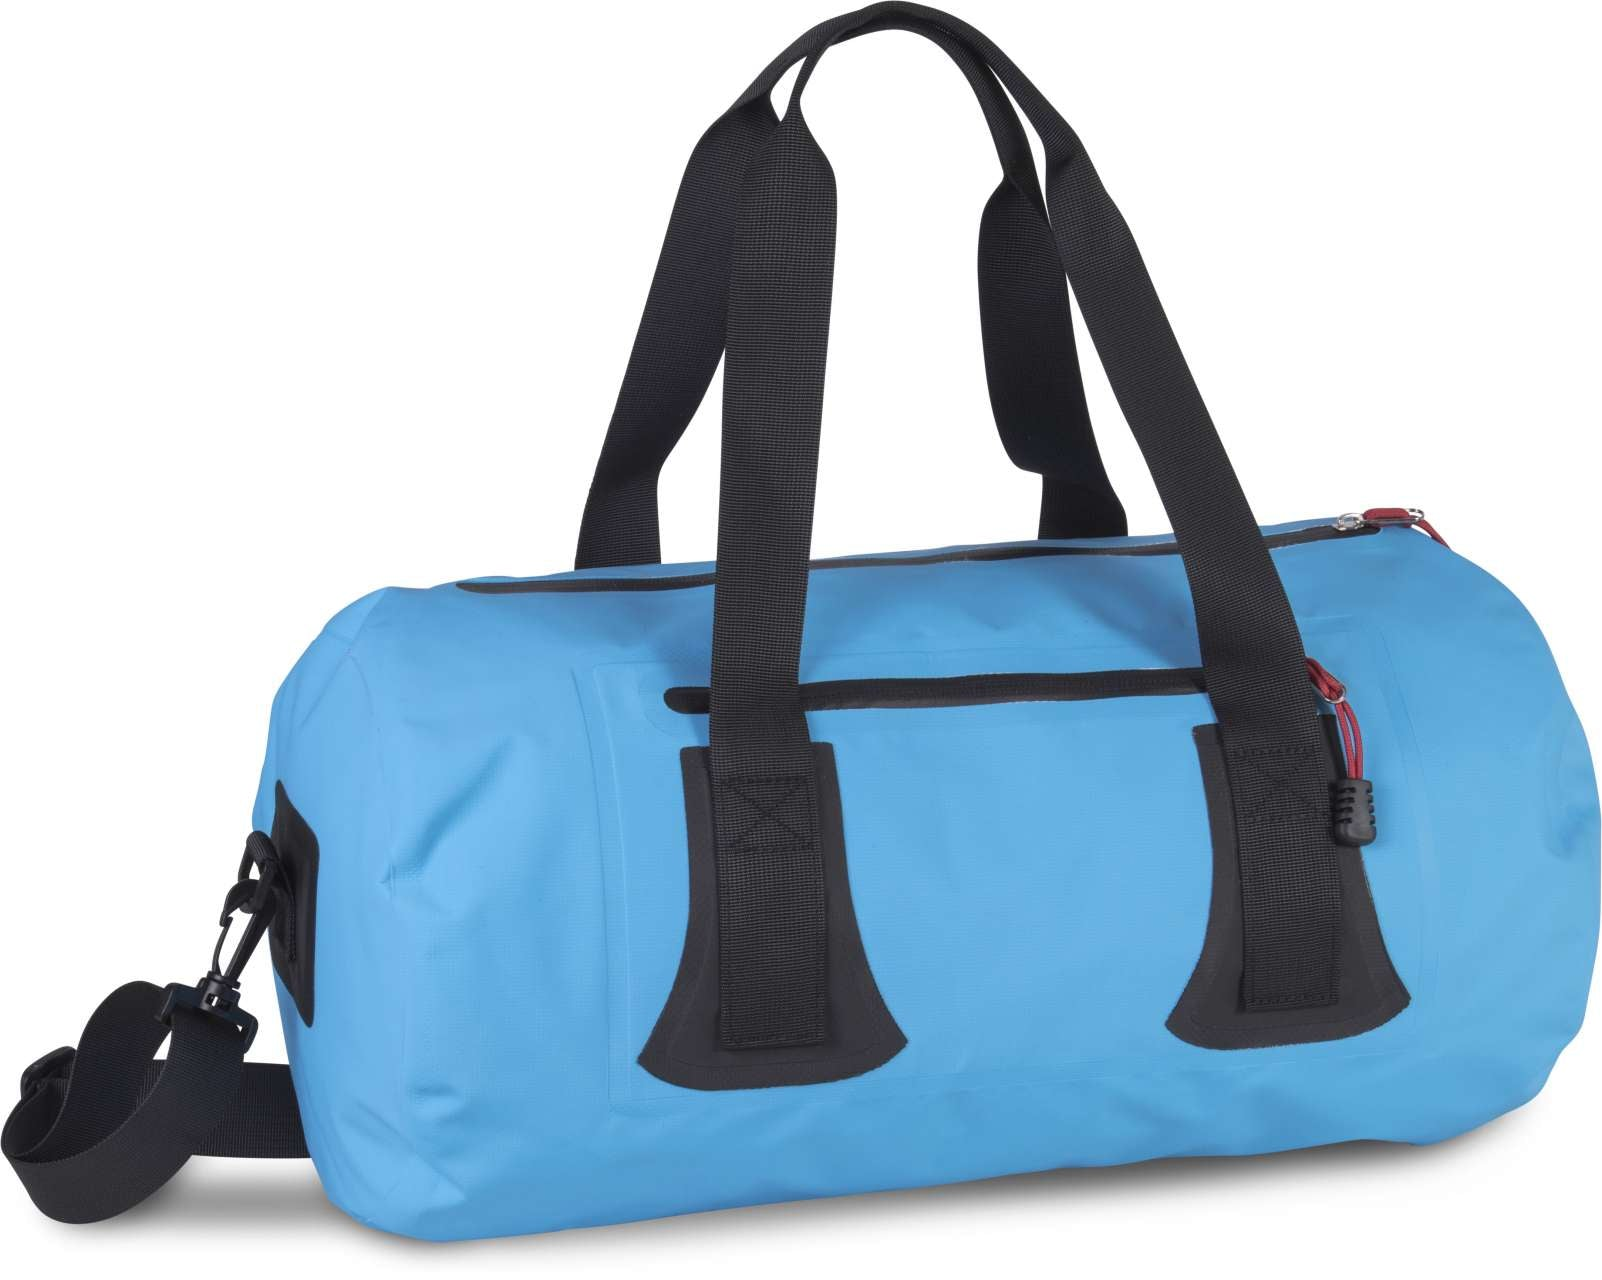 WATERPROOF HOLDALL